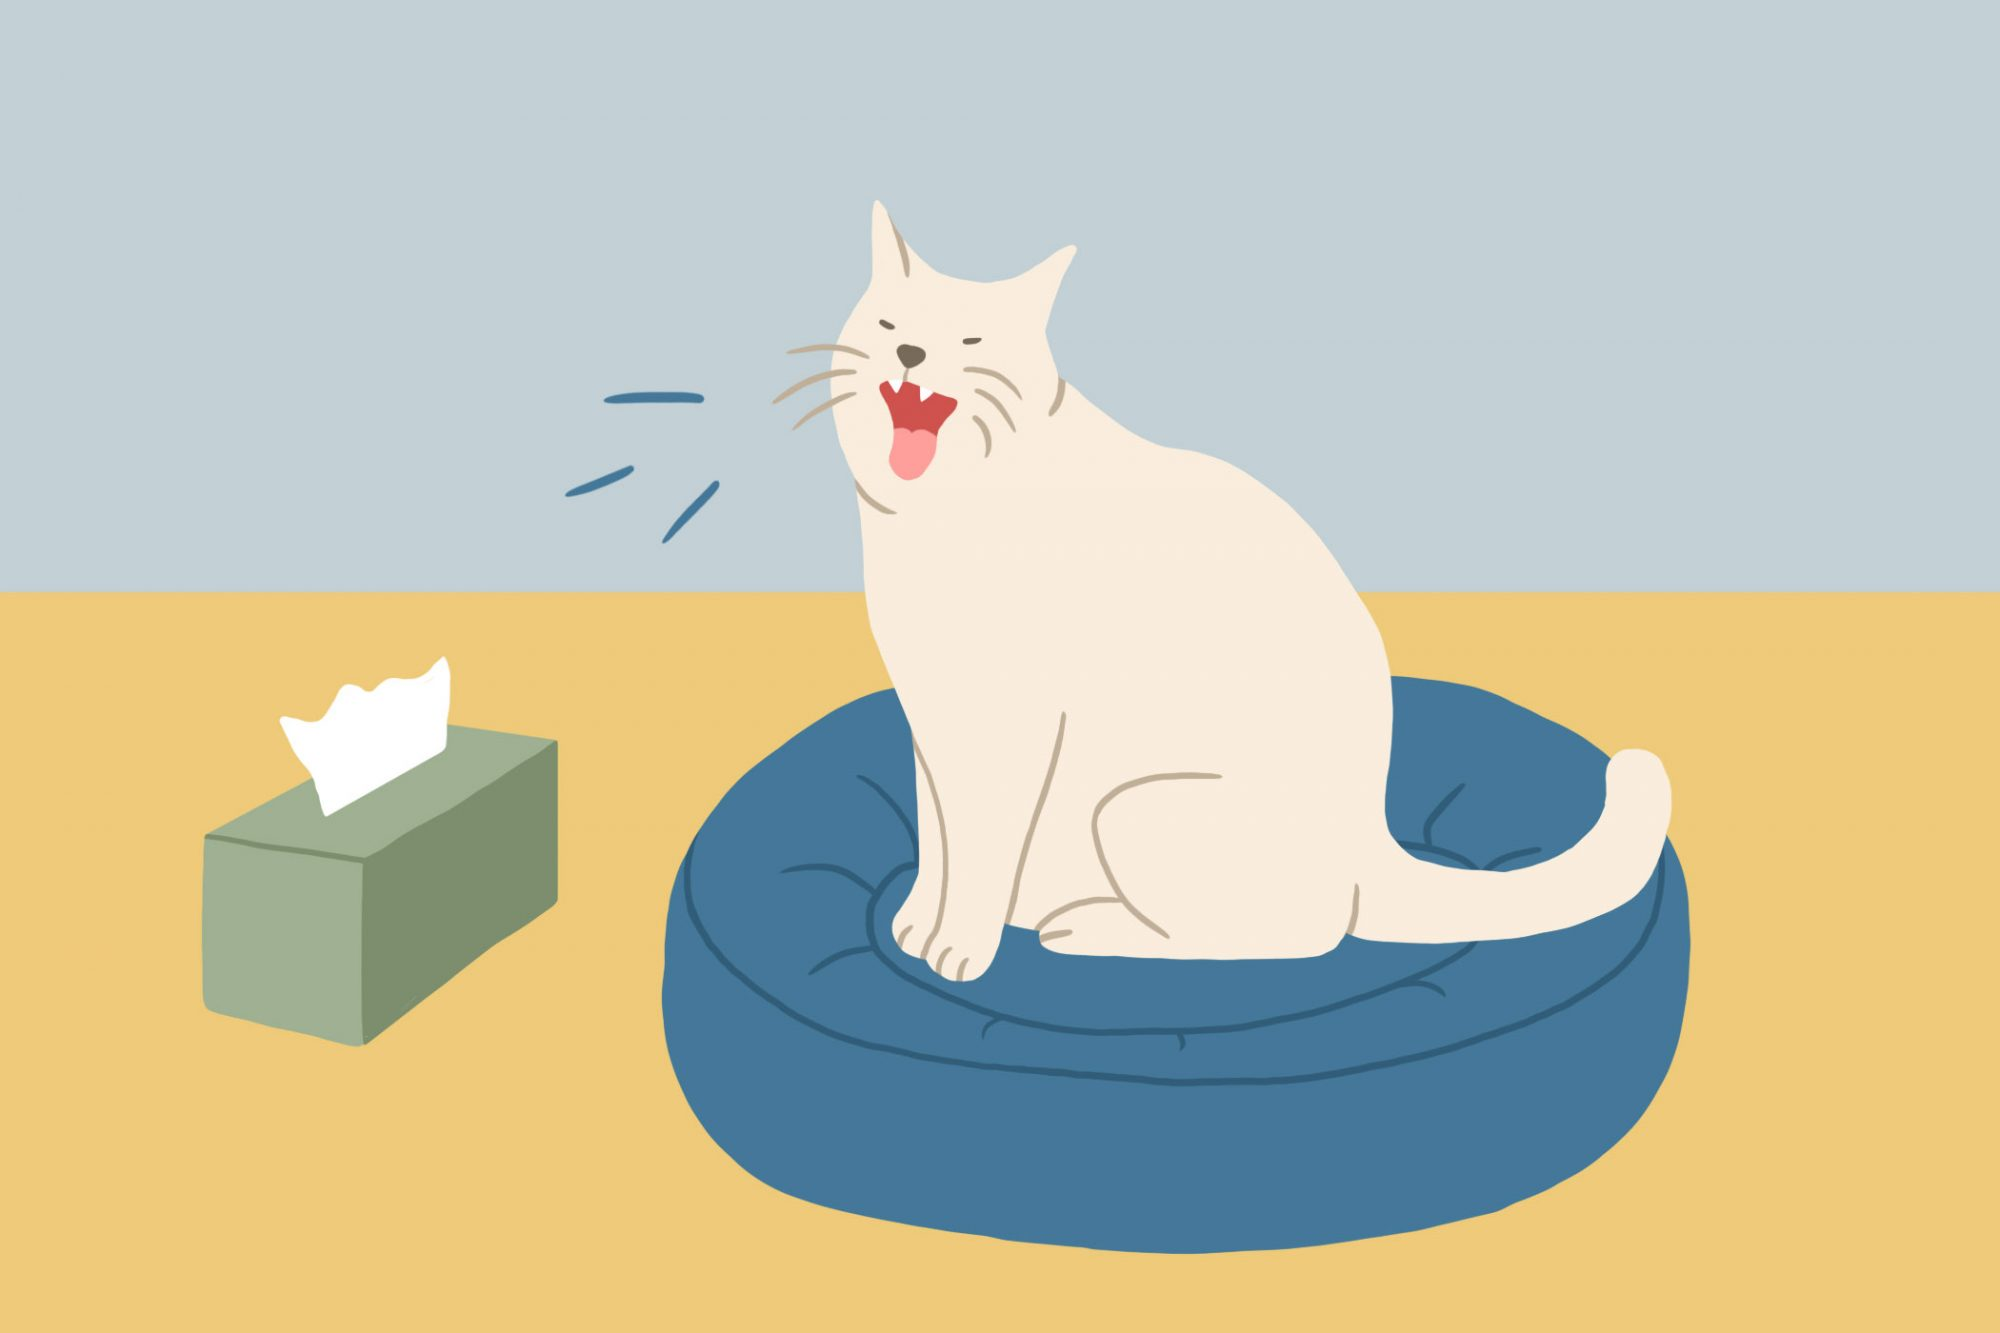 illustration of cat and a box of tissues